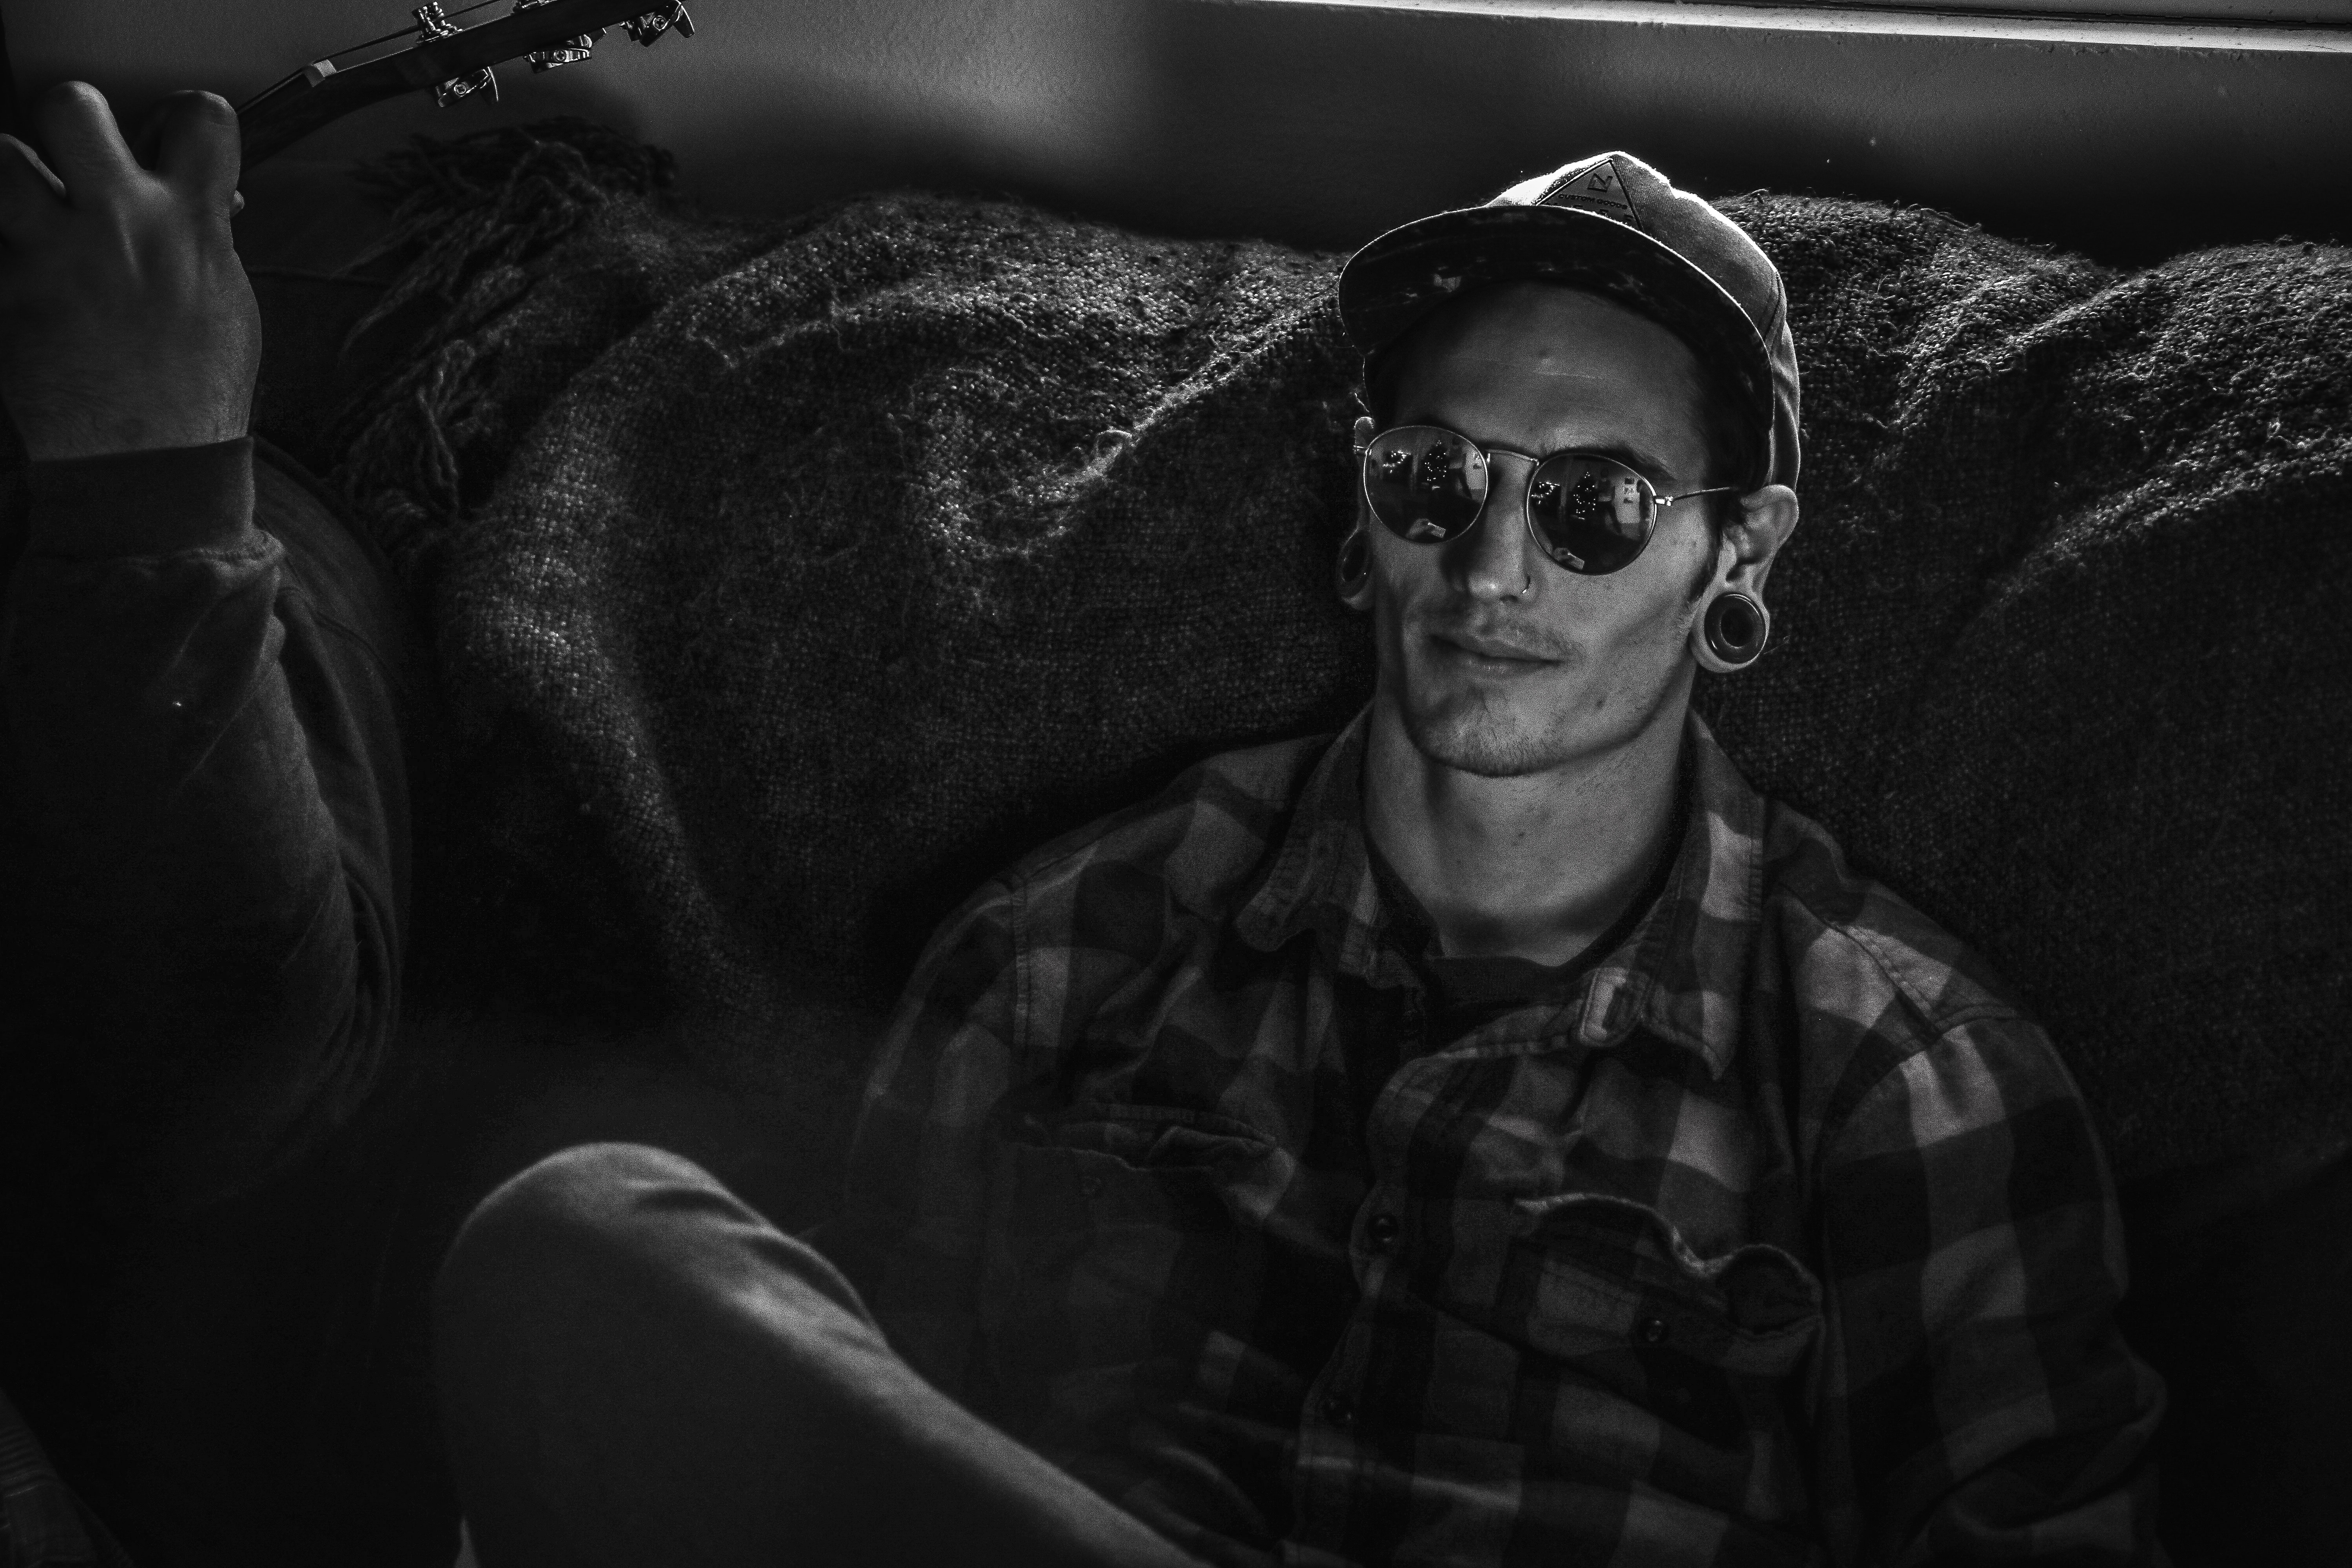 Grayscale Photo of Man Wearing Snapback Cap and Plaid Dress Shirt Sitting on Couch, Adult, Black-and-white, Couch, Earrings, HQ Photo